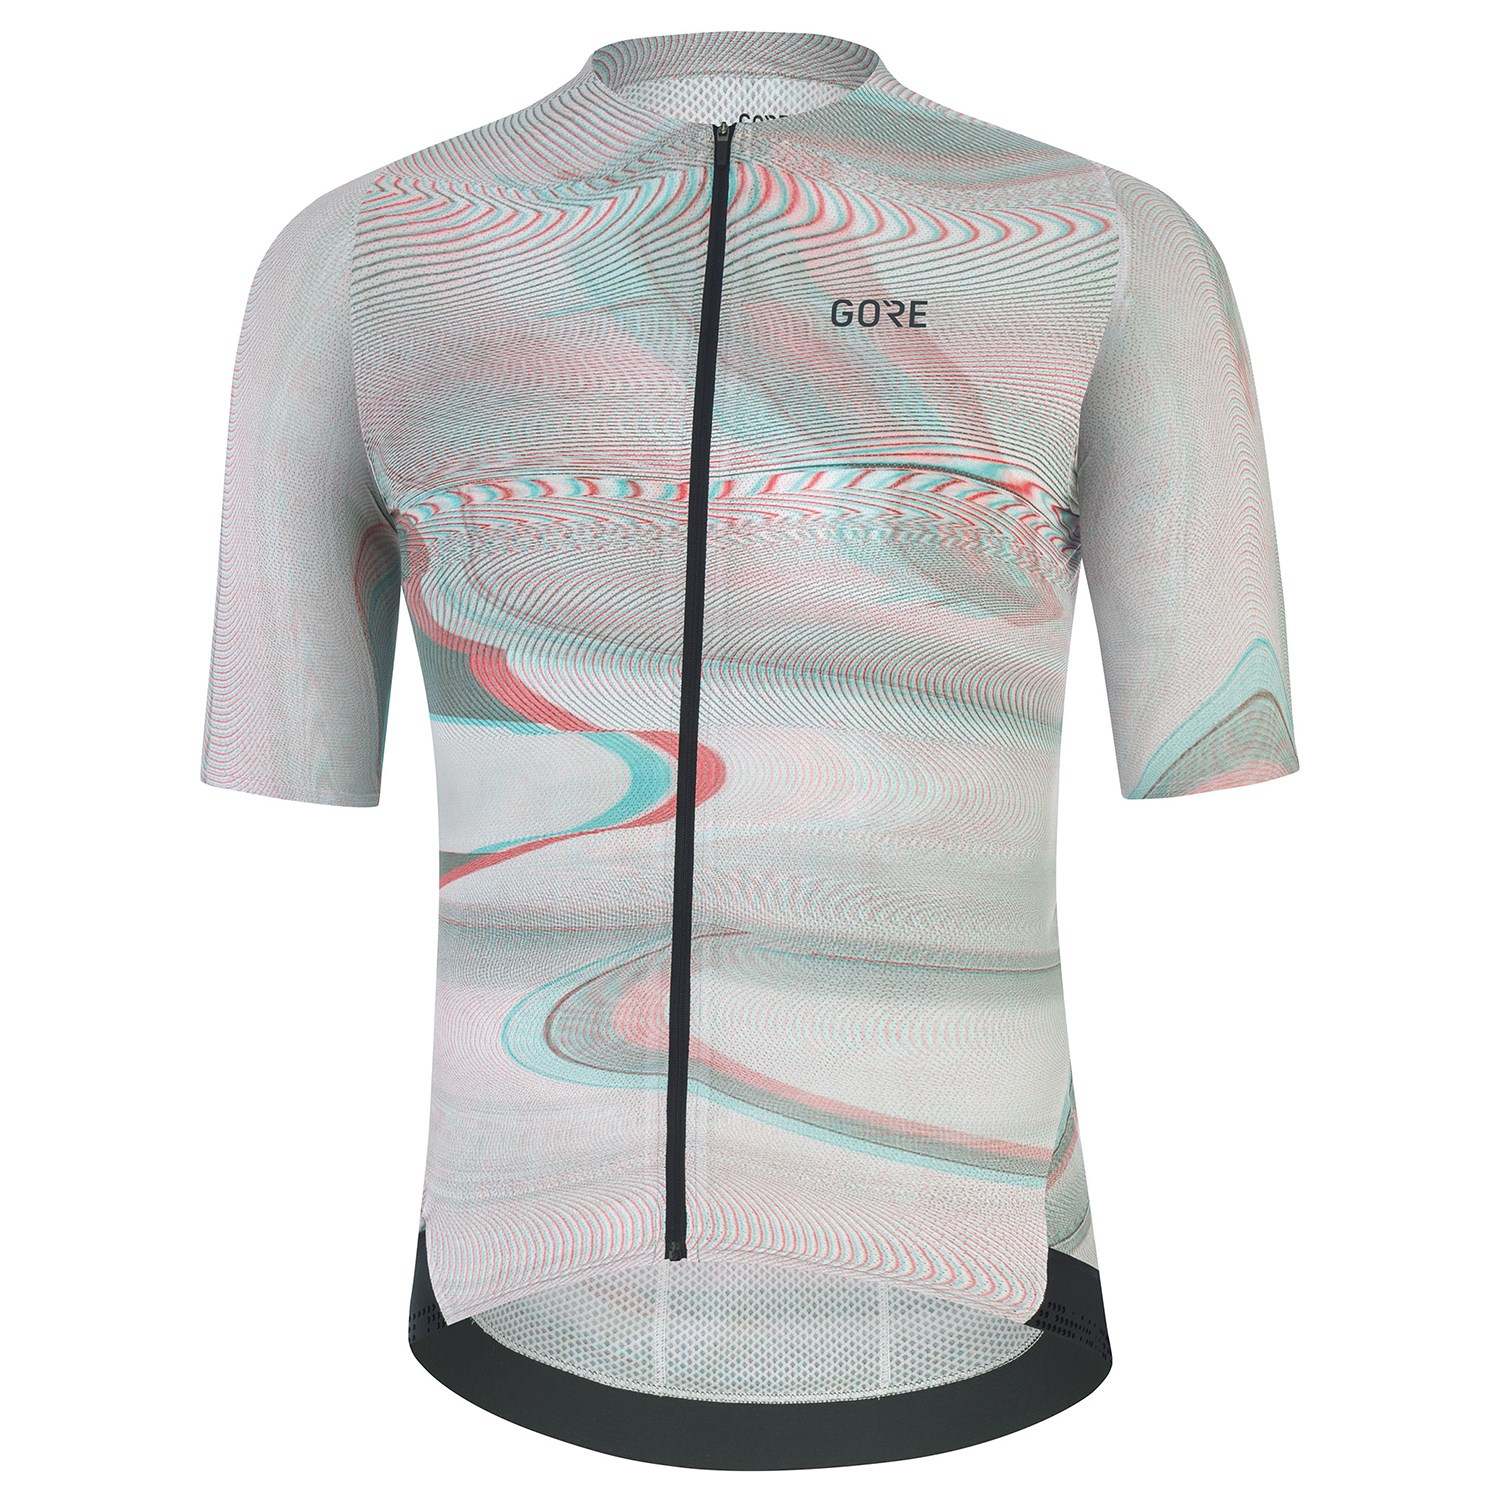 GORE Wear Chase Jersey